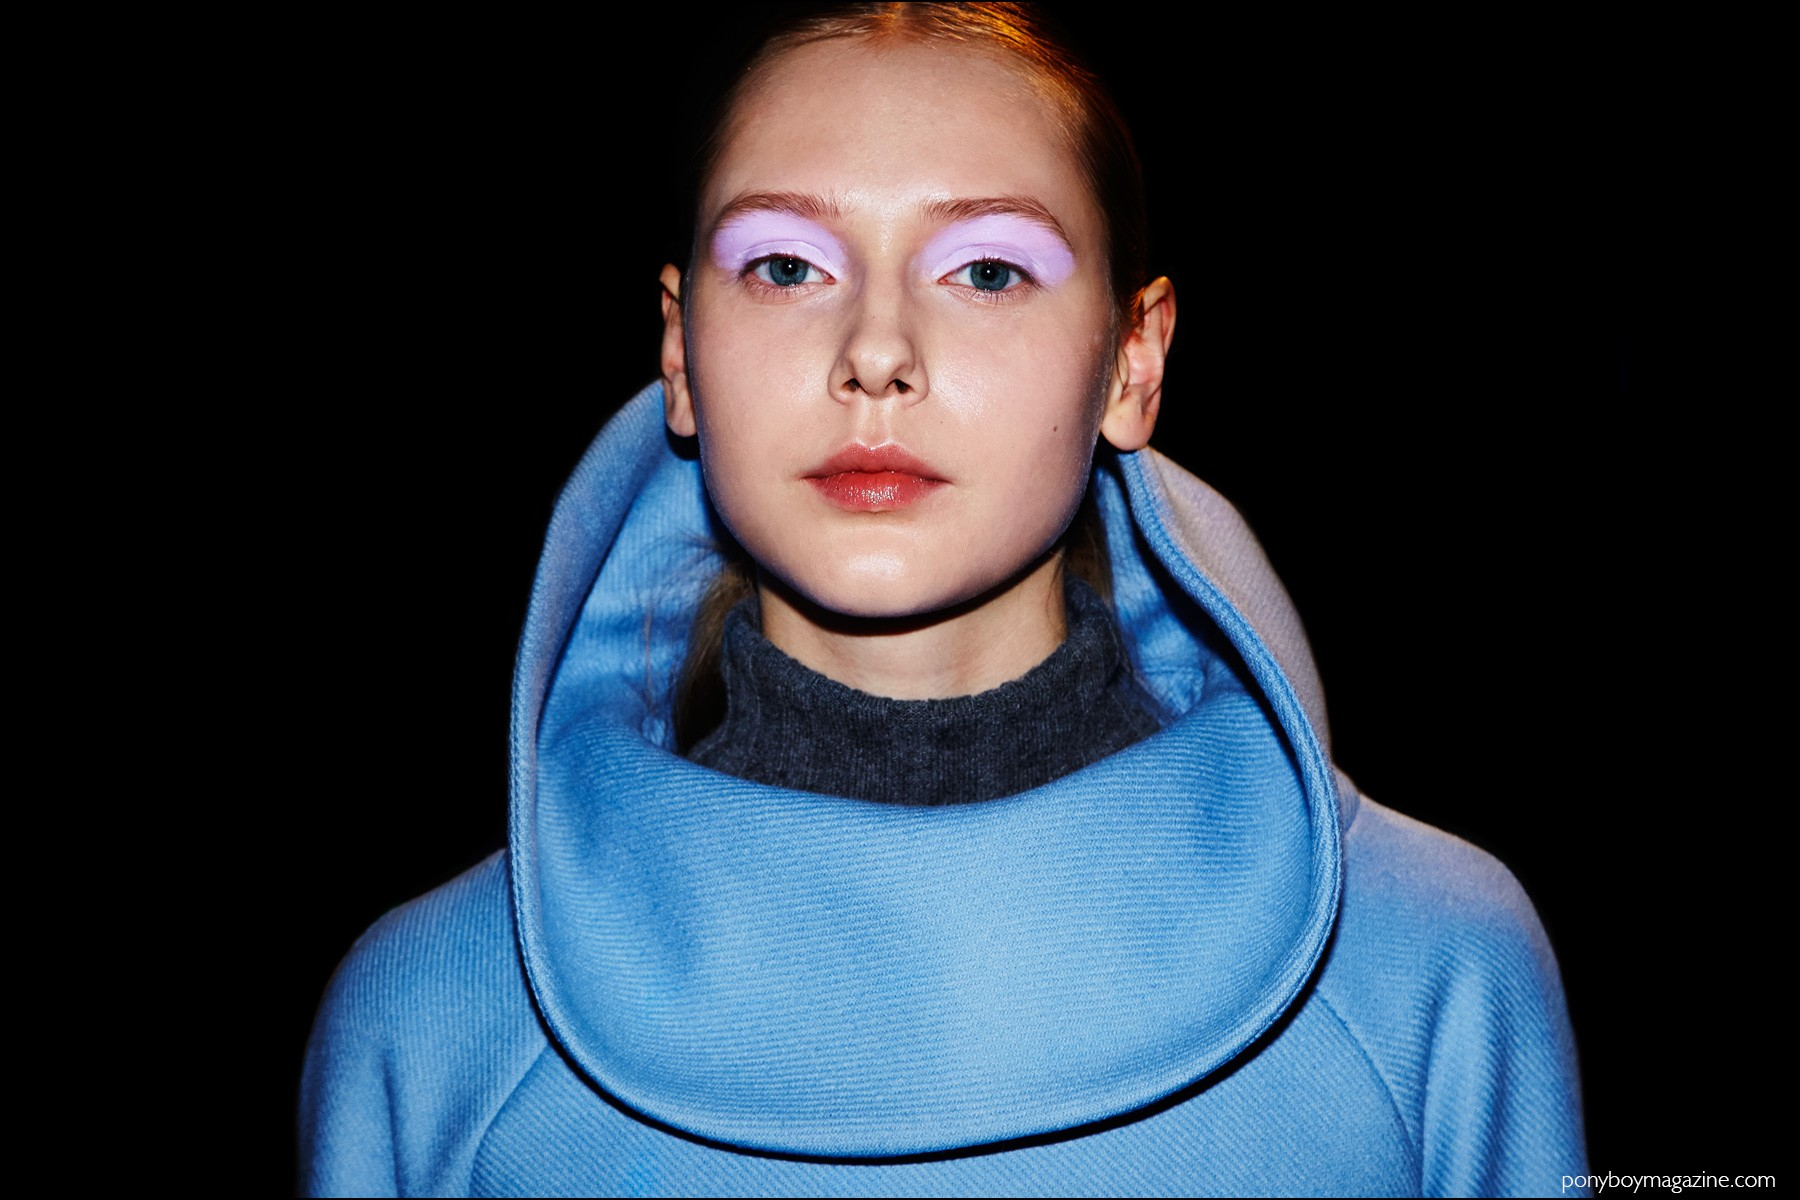 A model in an exaggerated collar, photographed backstage at Milly F/W16 womenswear show. Photography by Alexander Thompson for Ponyboy magazine NY.